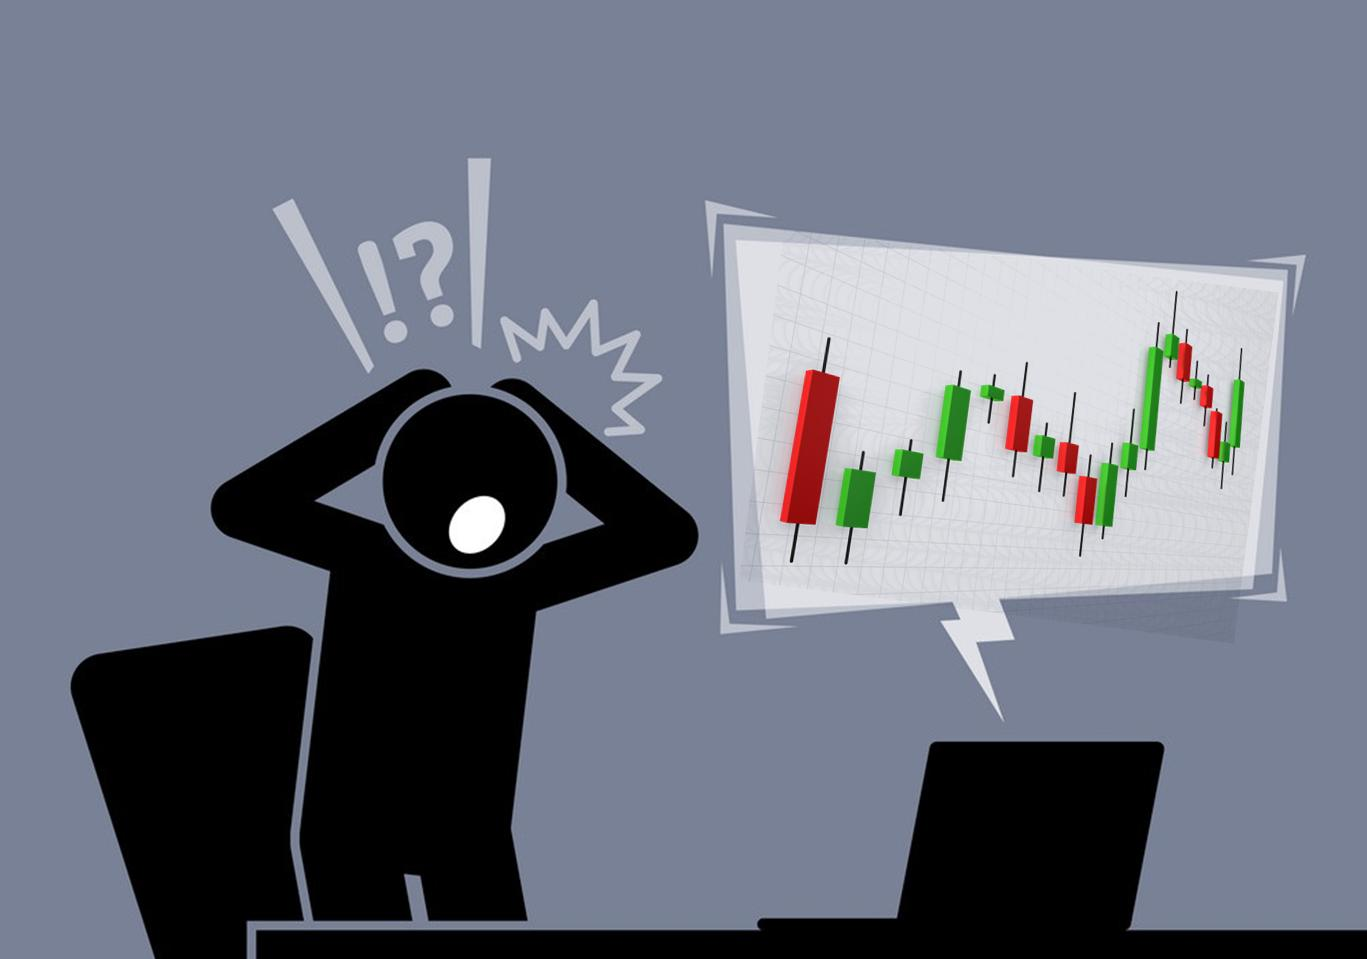 Emotions are the most important factor in trading